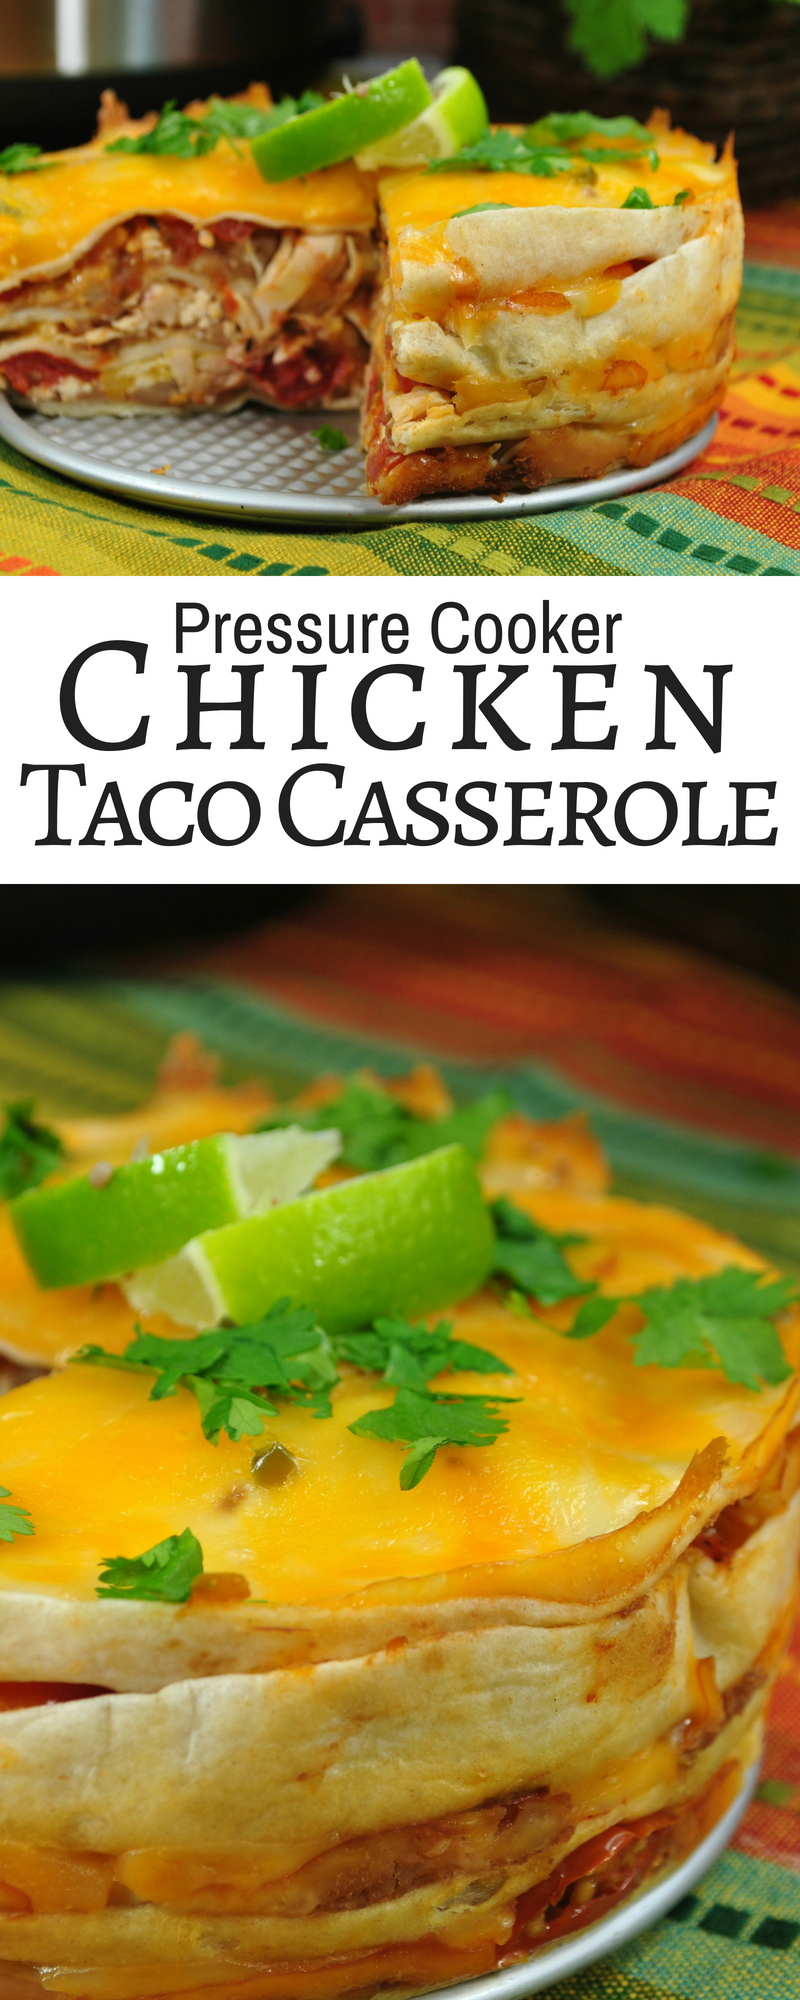 This pressure cooker chicken taco casserole is an easy recipe for those busy nights! One of our absolute favorite pressure cooker chicken recipes is this chicken taco casserole...the kids gobble it up every time!